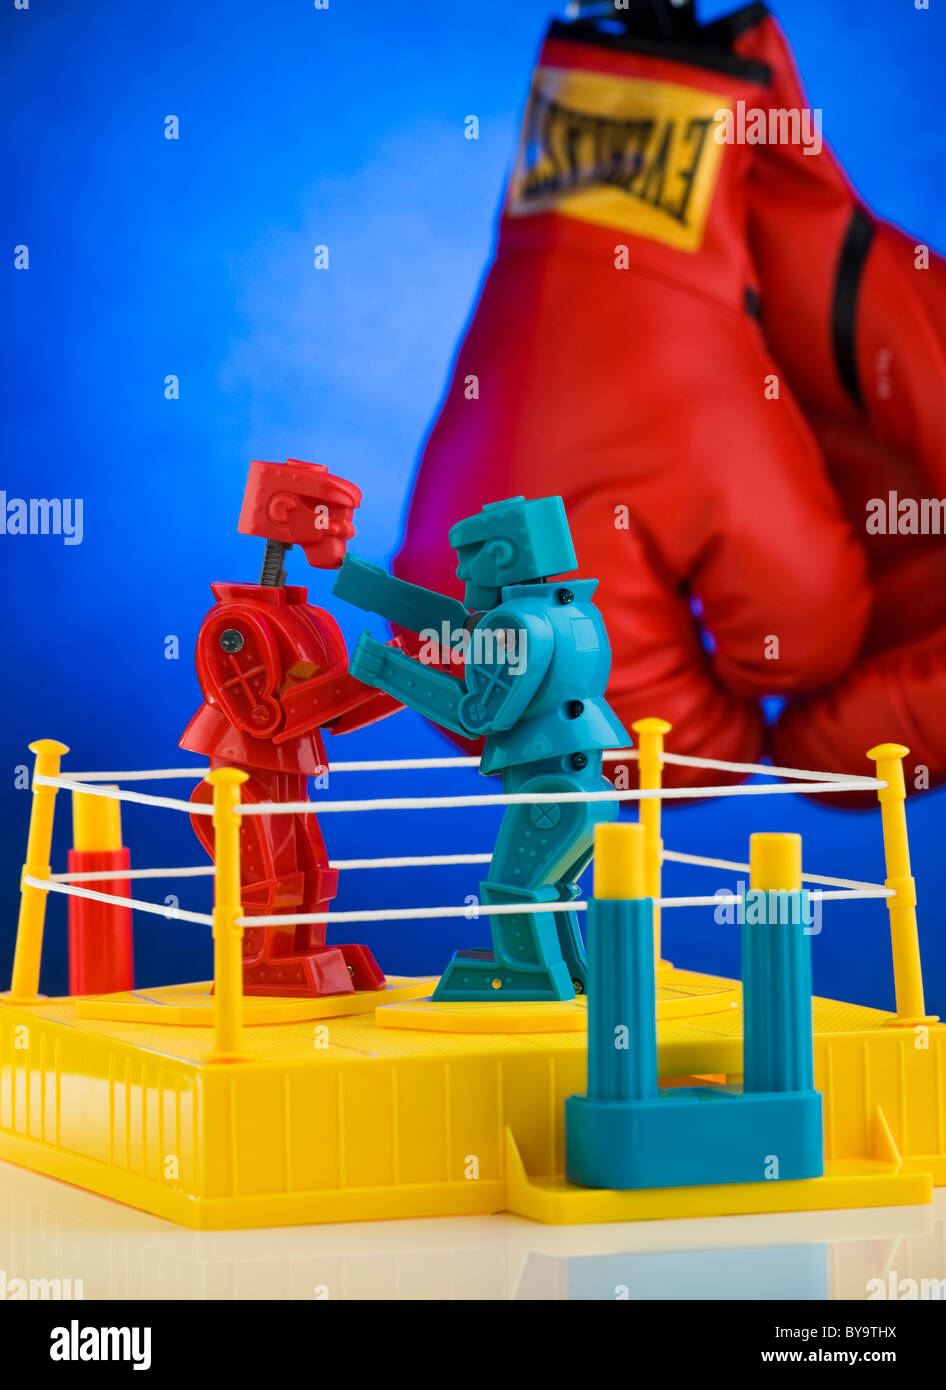 An artistic view of the classic game from the 1970's 'Rock 'em Sock 'em Robots', produced by - Stock Image